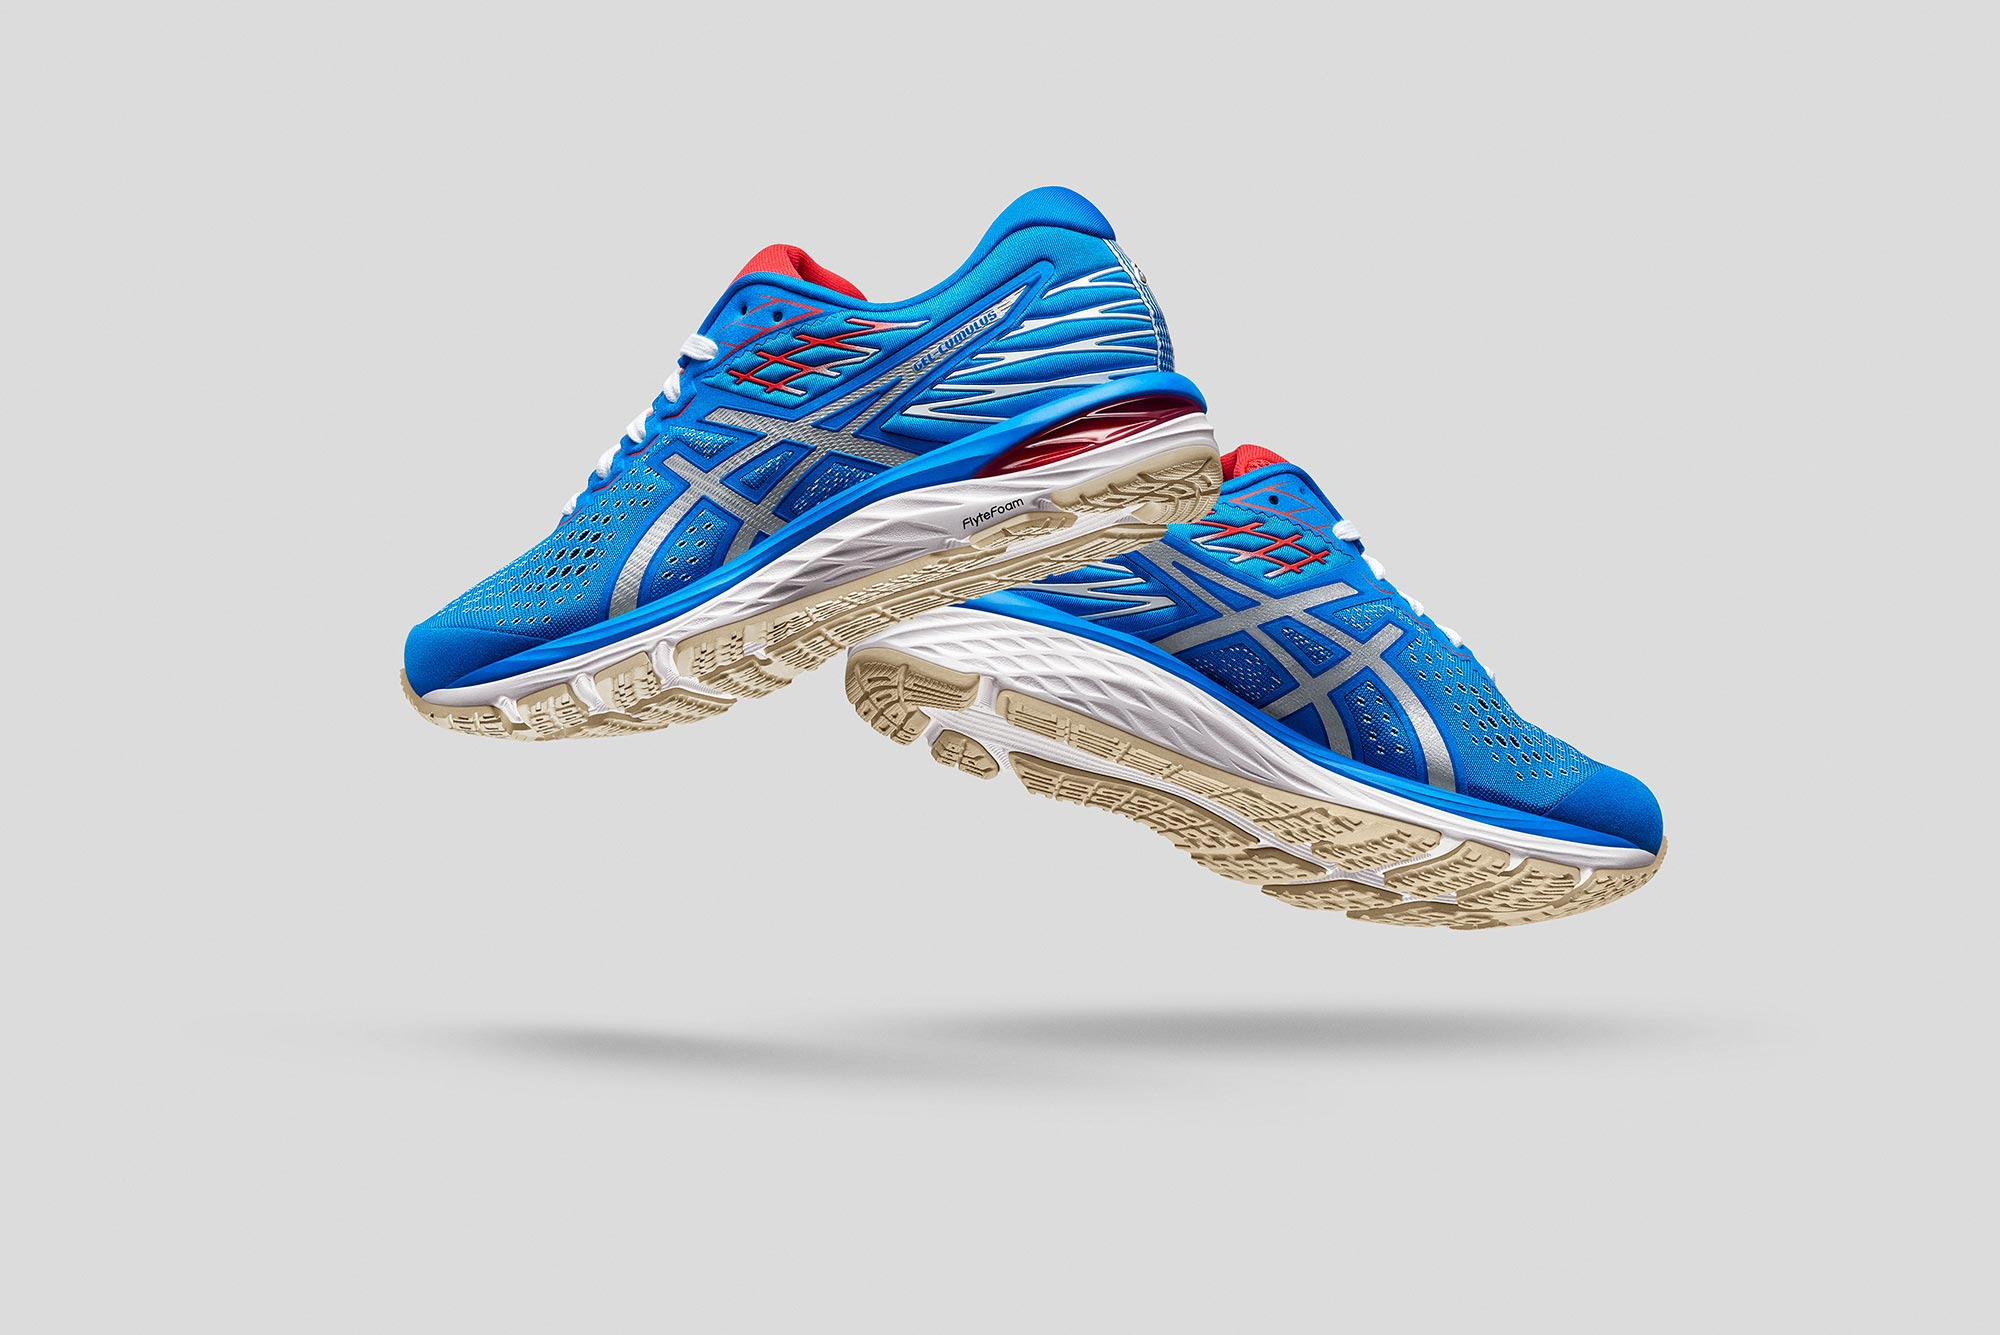 asics gel cumulus 21 running shoes in the new tokyo retro pack colour way captured in studio using a nikon d810 stills camera